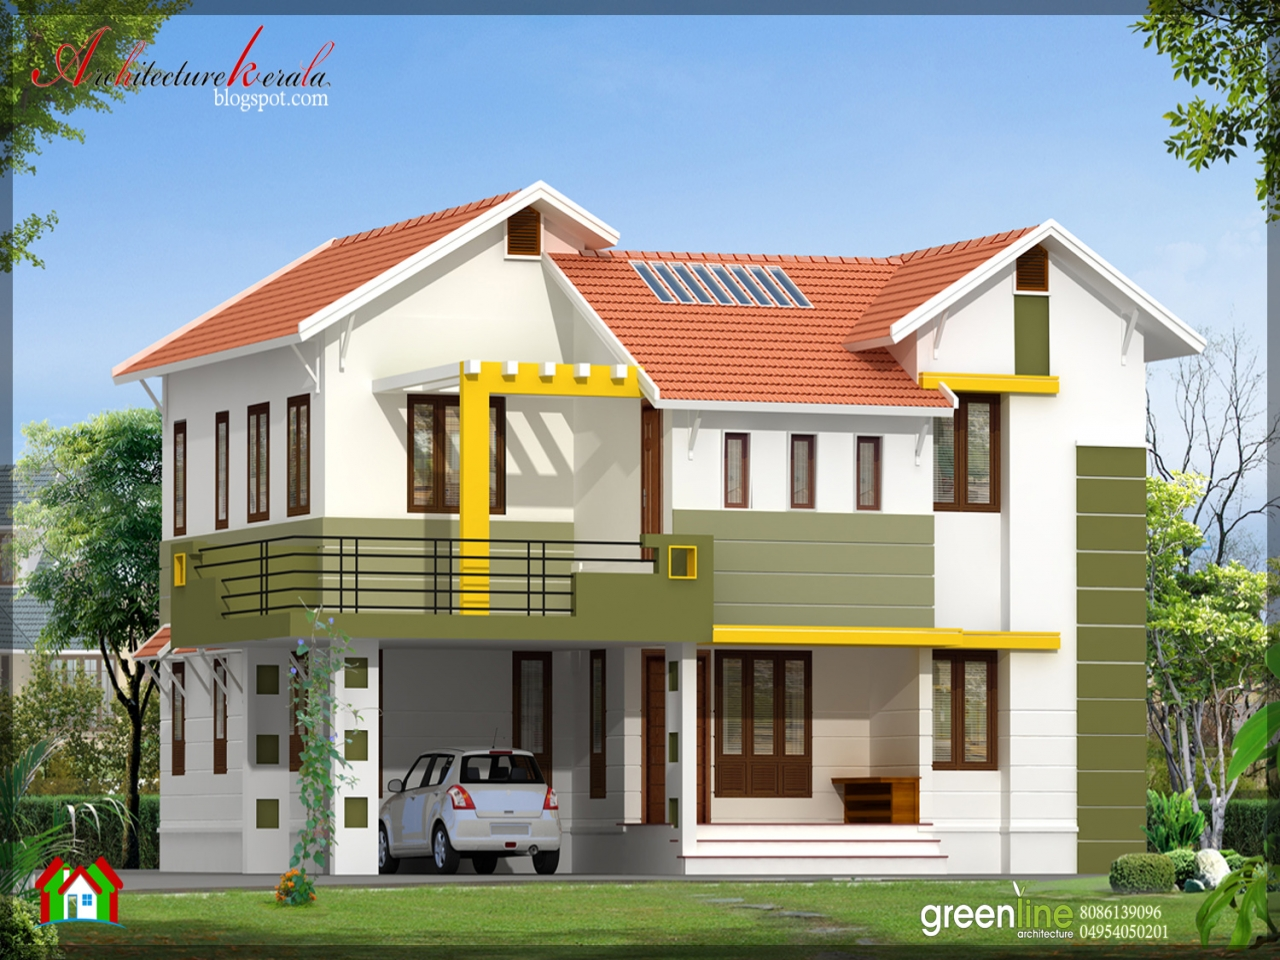 Simple modern house designs simple house design in india for Modern home design in india